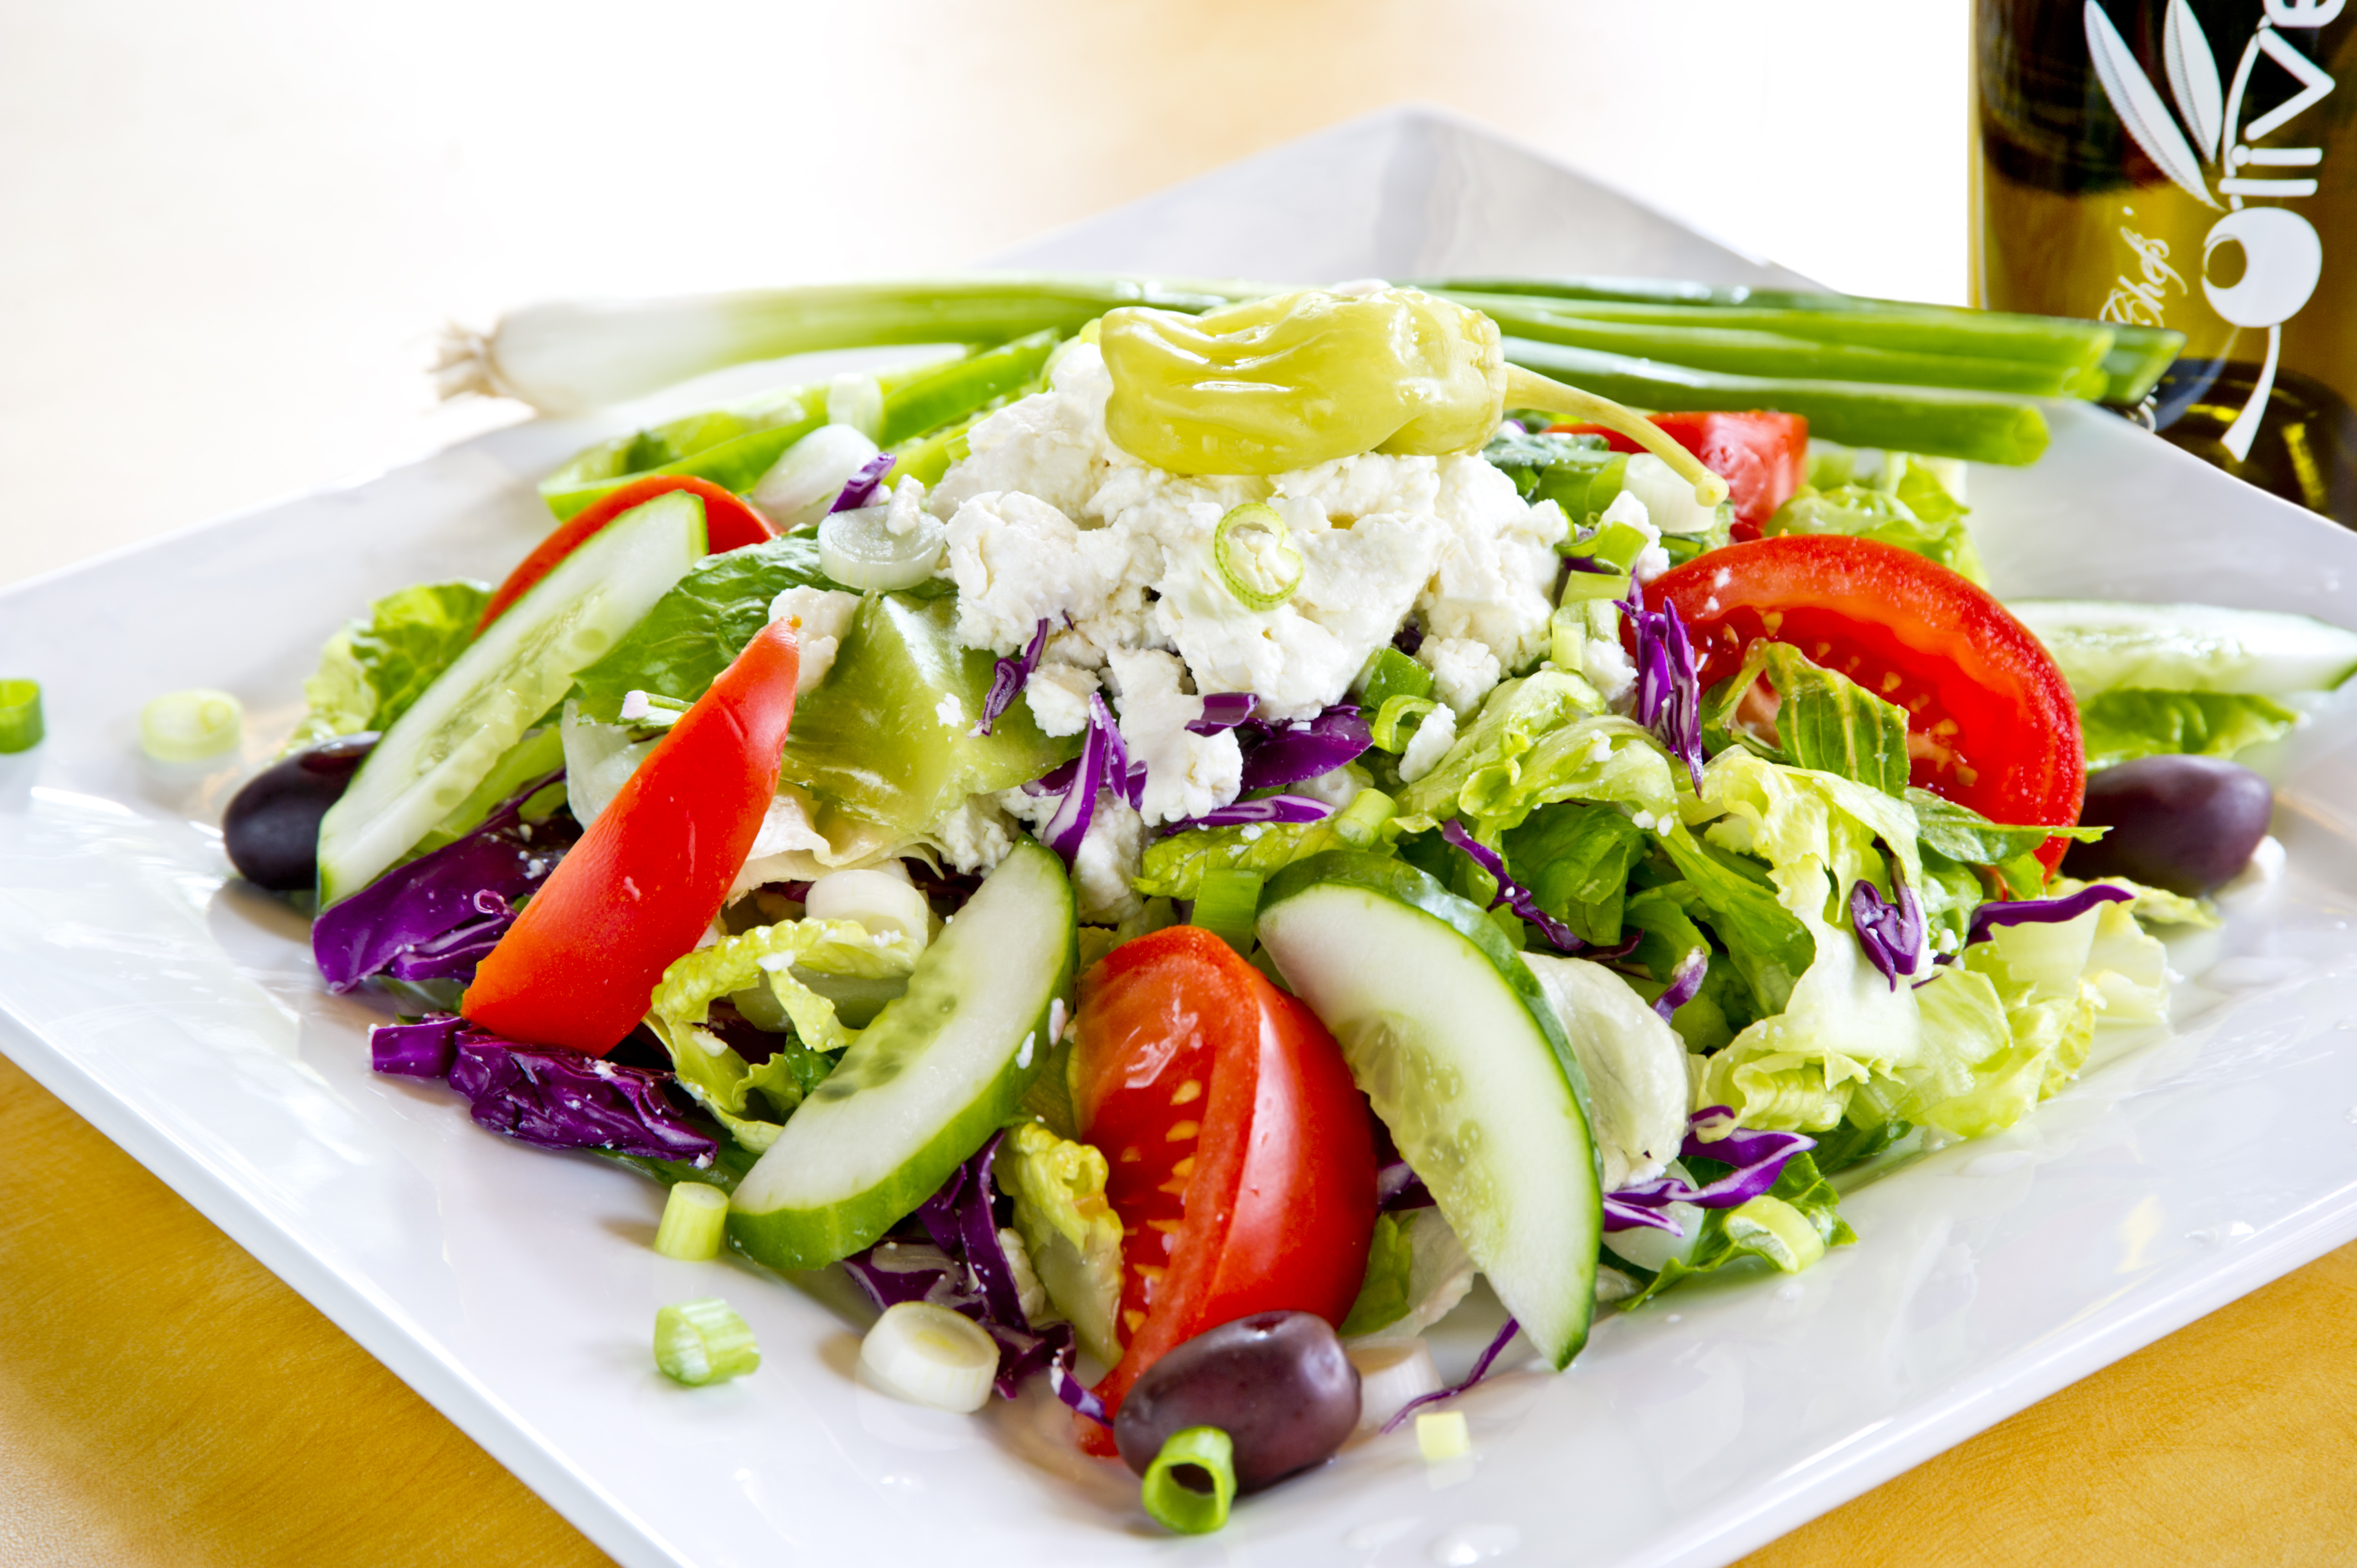 greek-salad-july-2013b.jpg